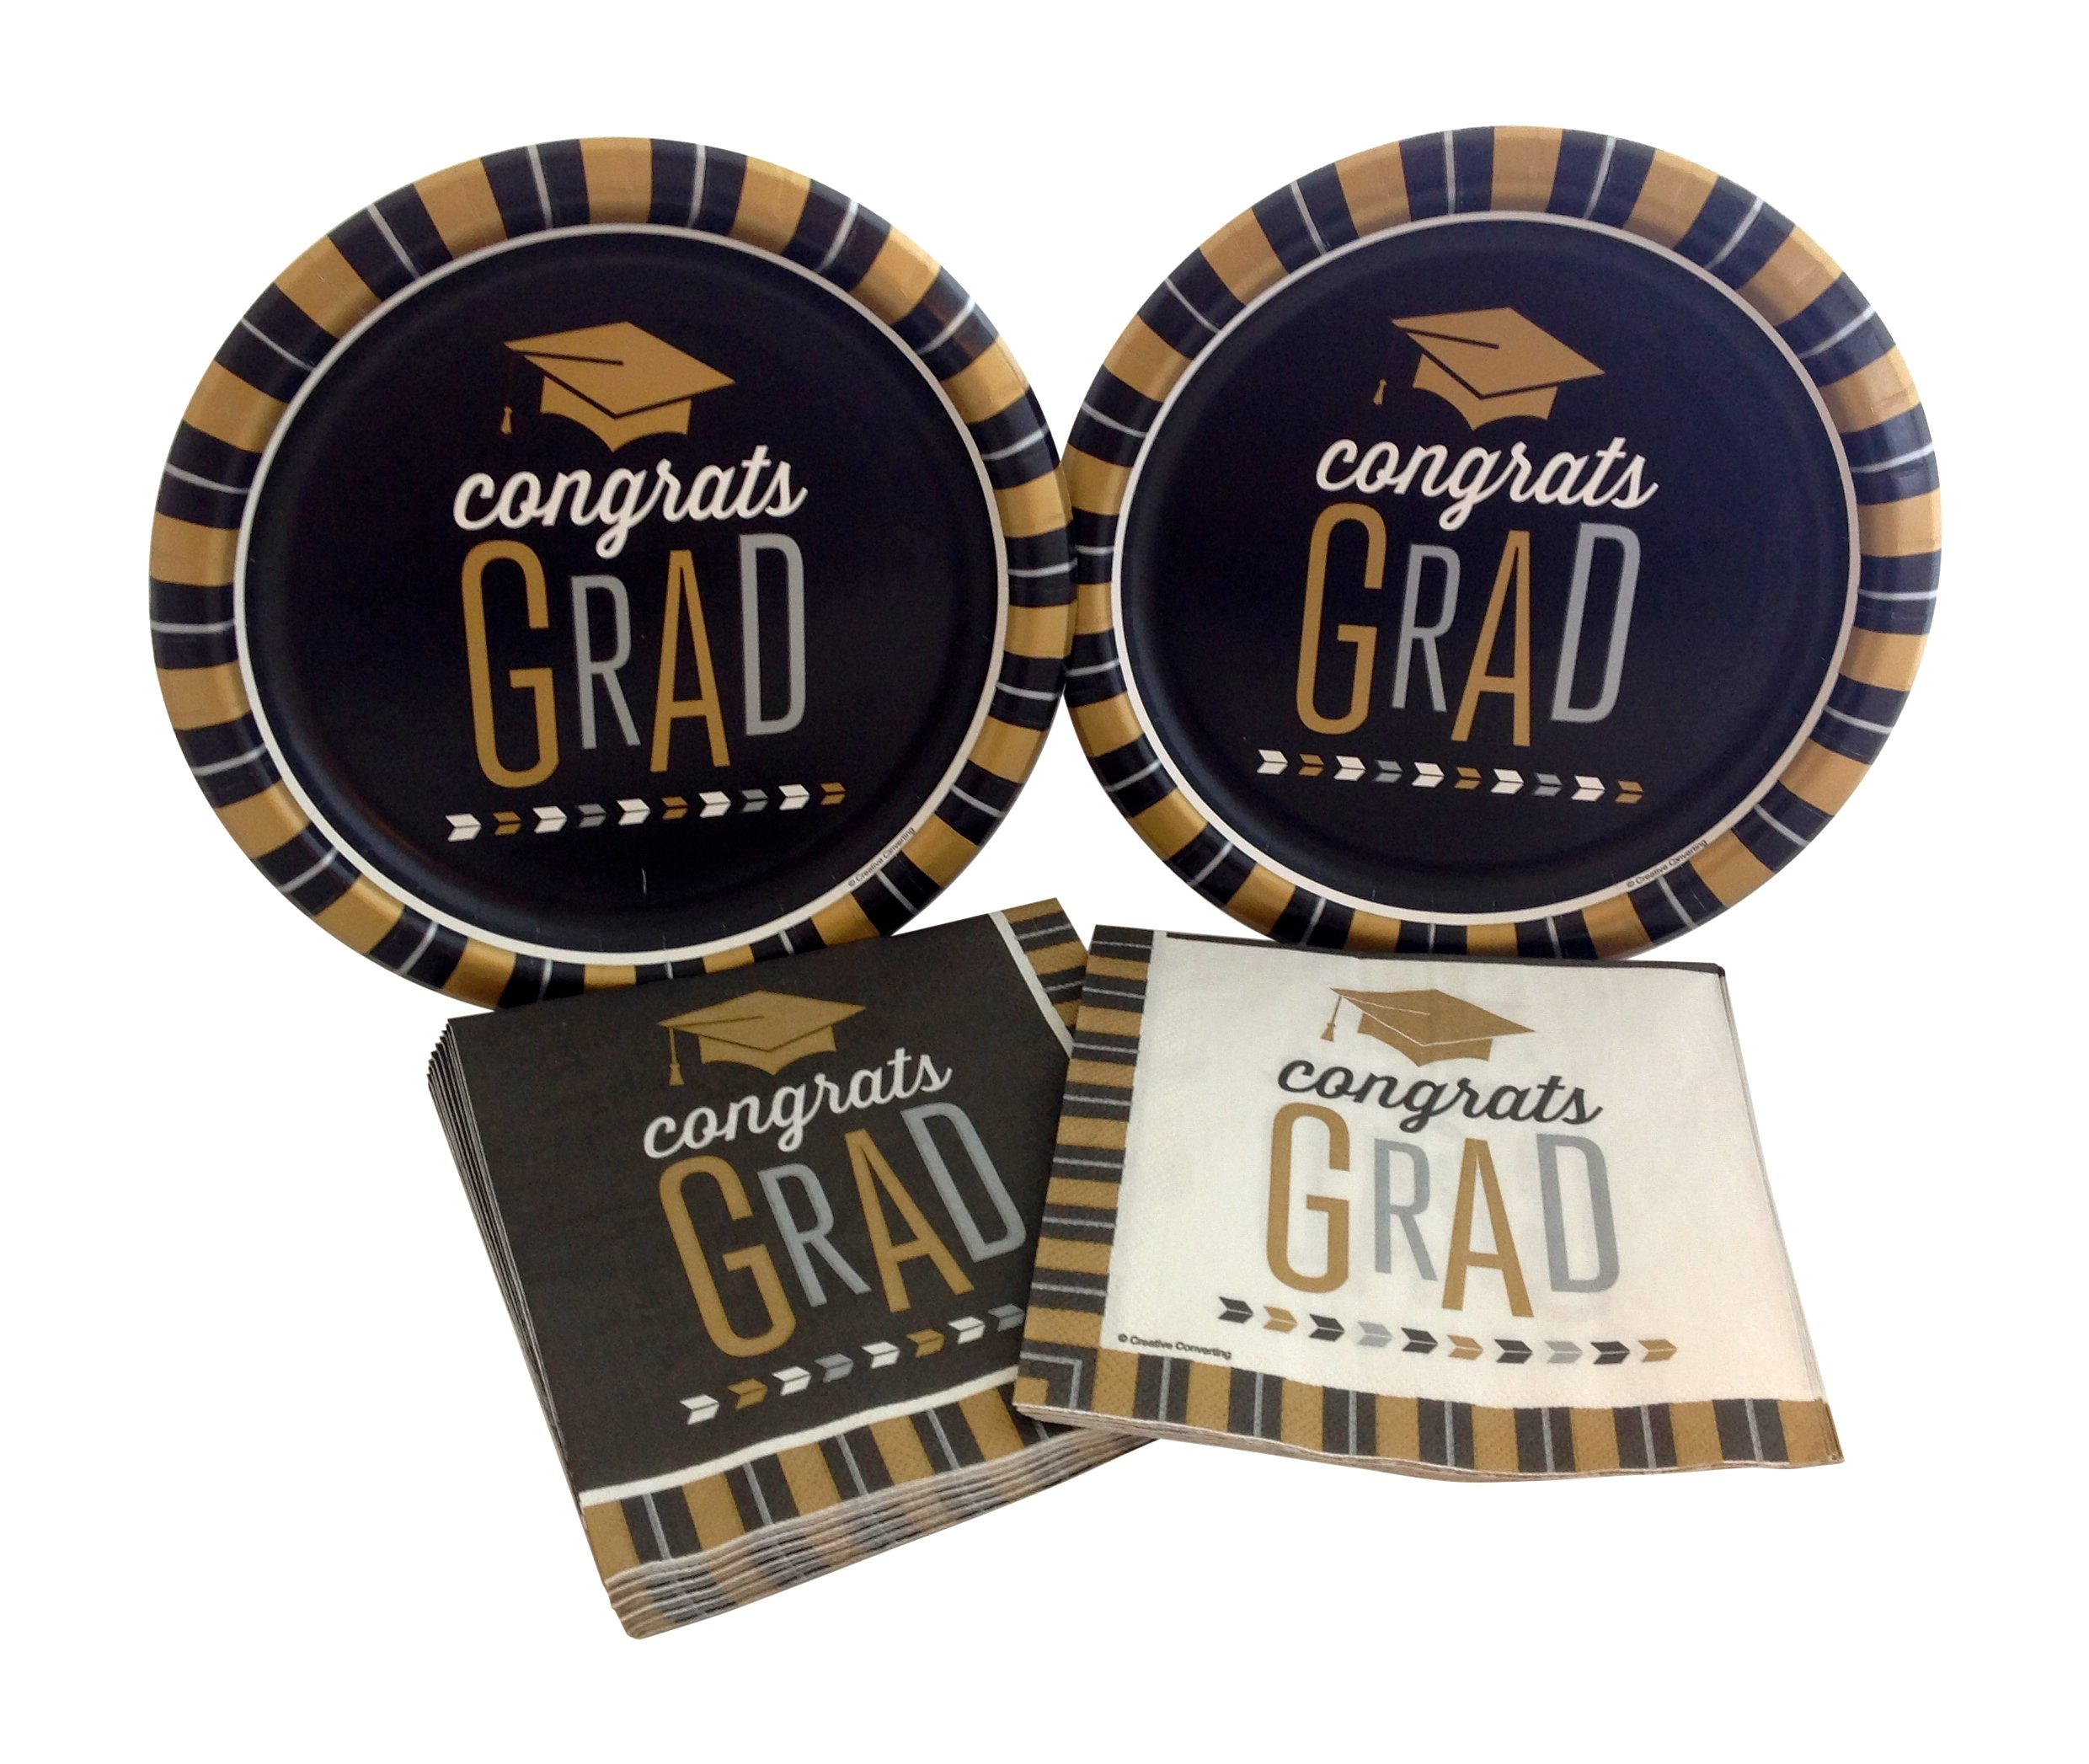 Congrats Grad Graduation Party Bundle with Dinner Paper Plates and Napkins for 16 Guests